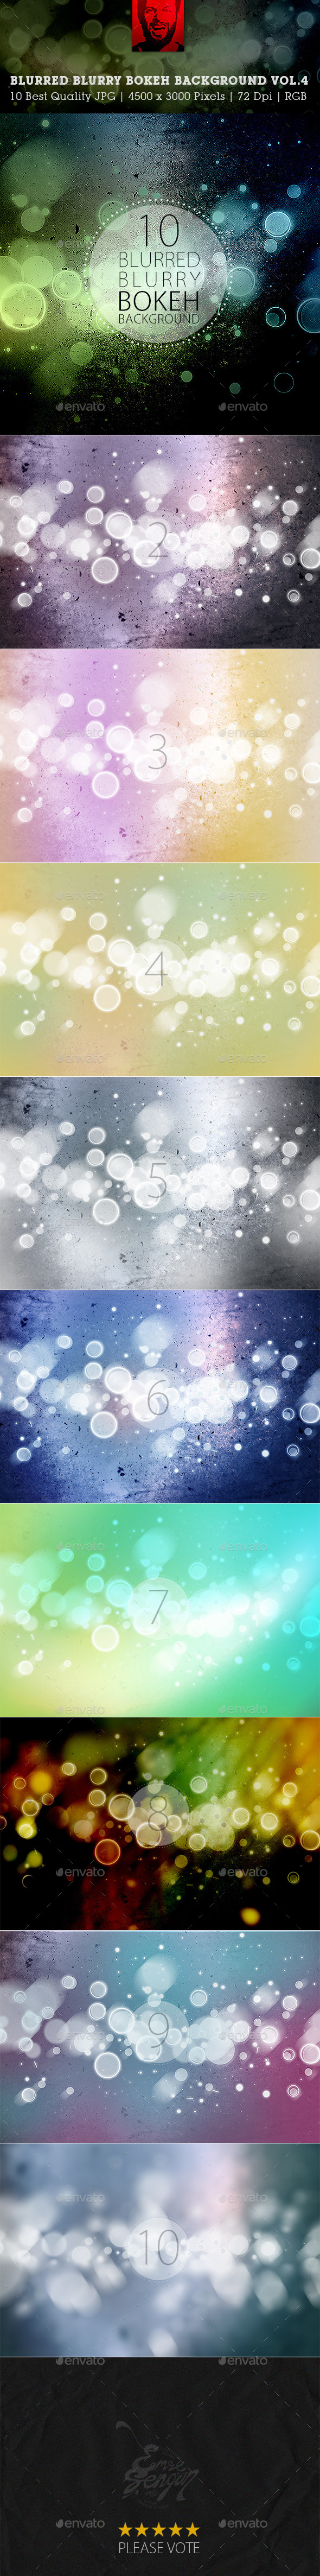 GraphicRiver Blurred Blurry Blur Bokeh Backgrounds Vol.3 9979410